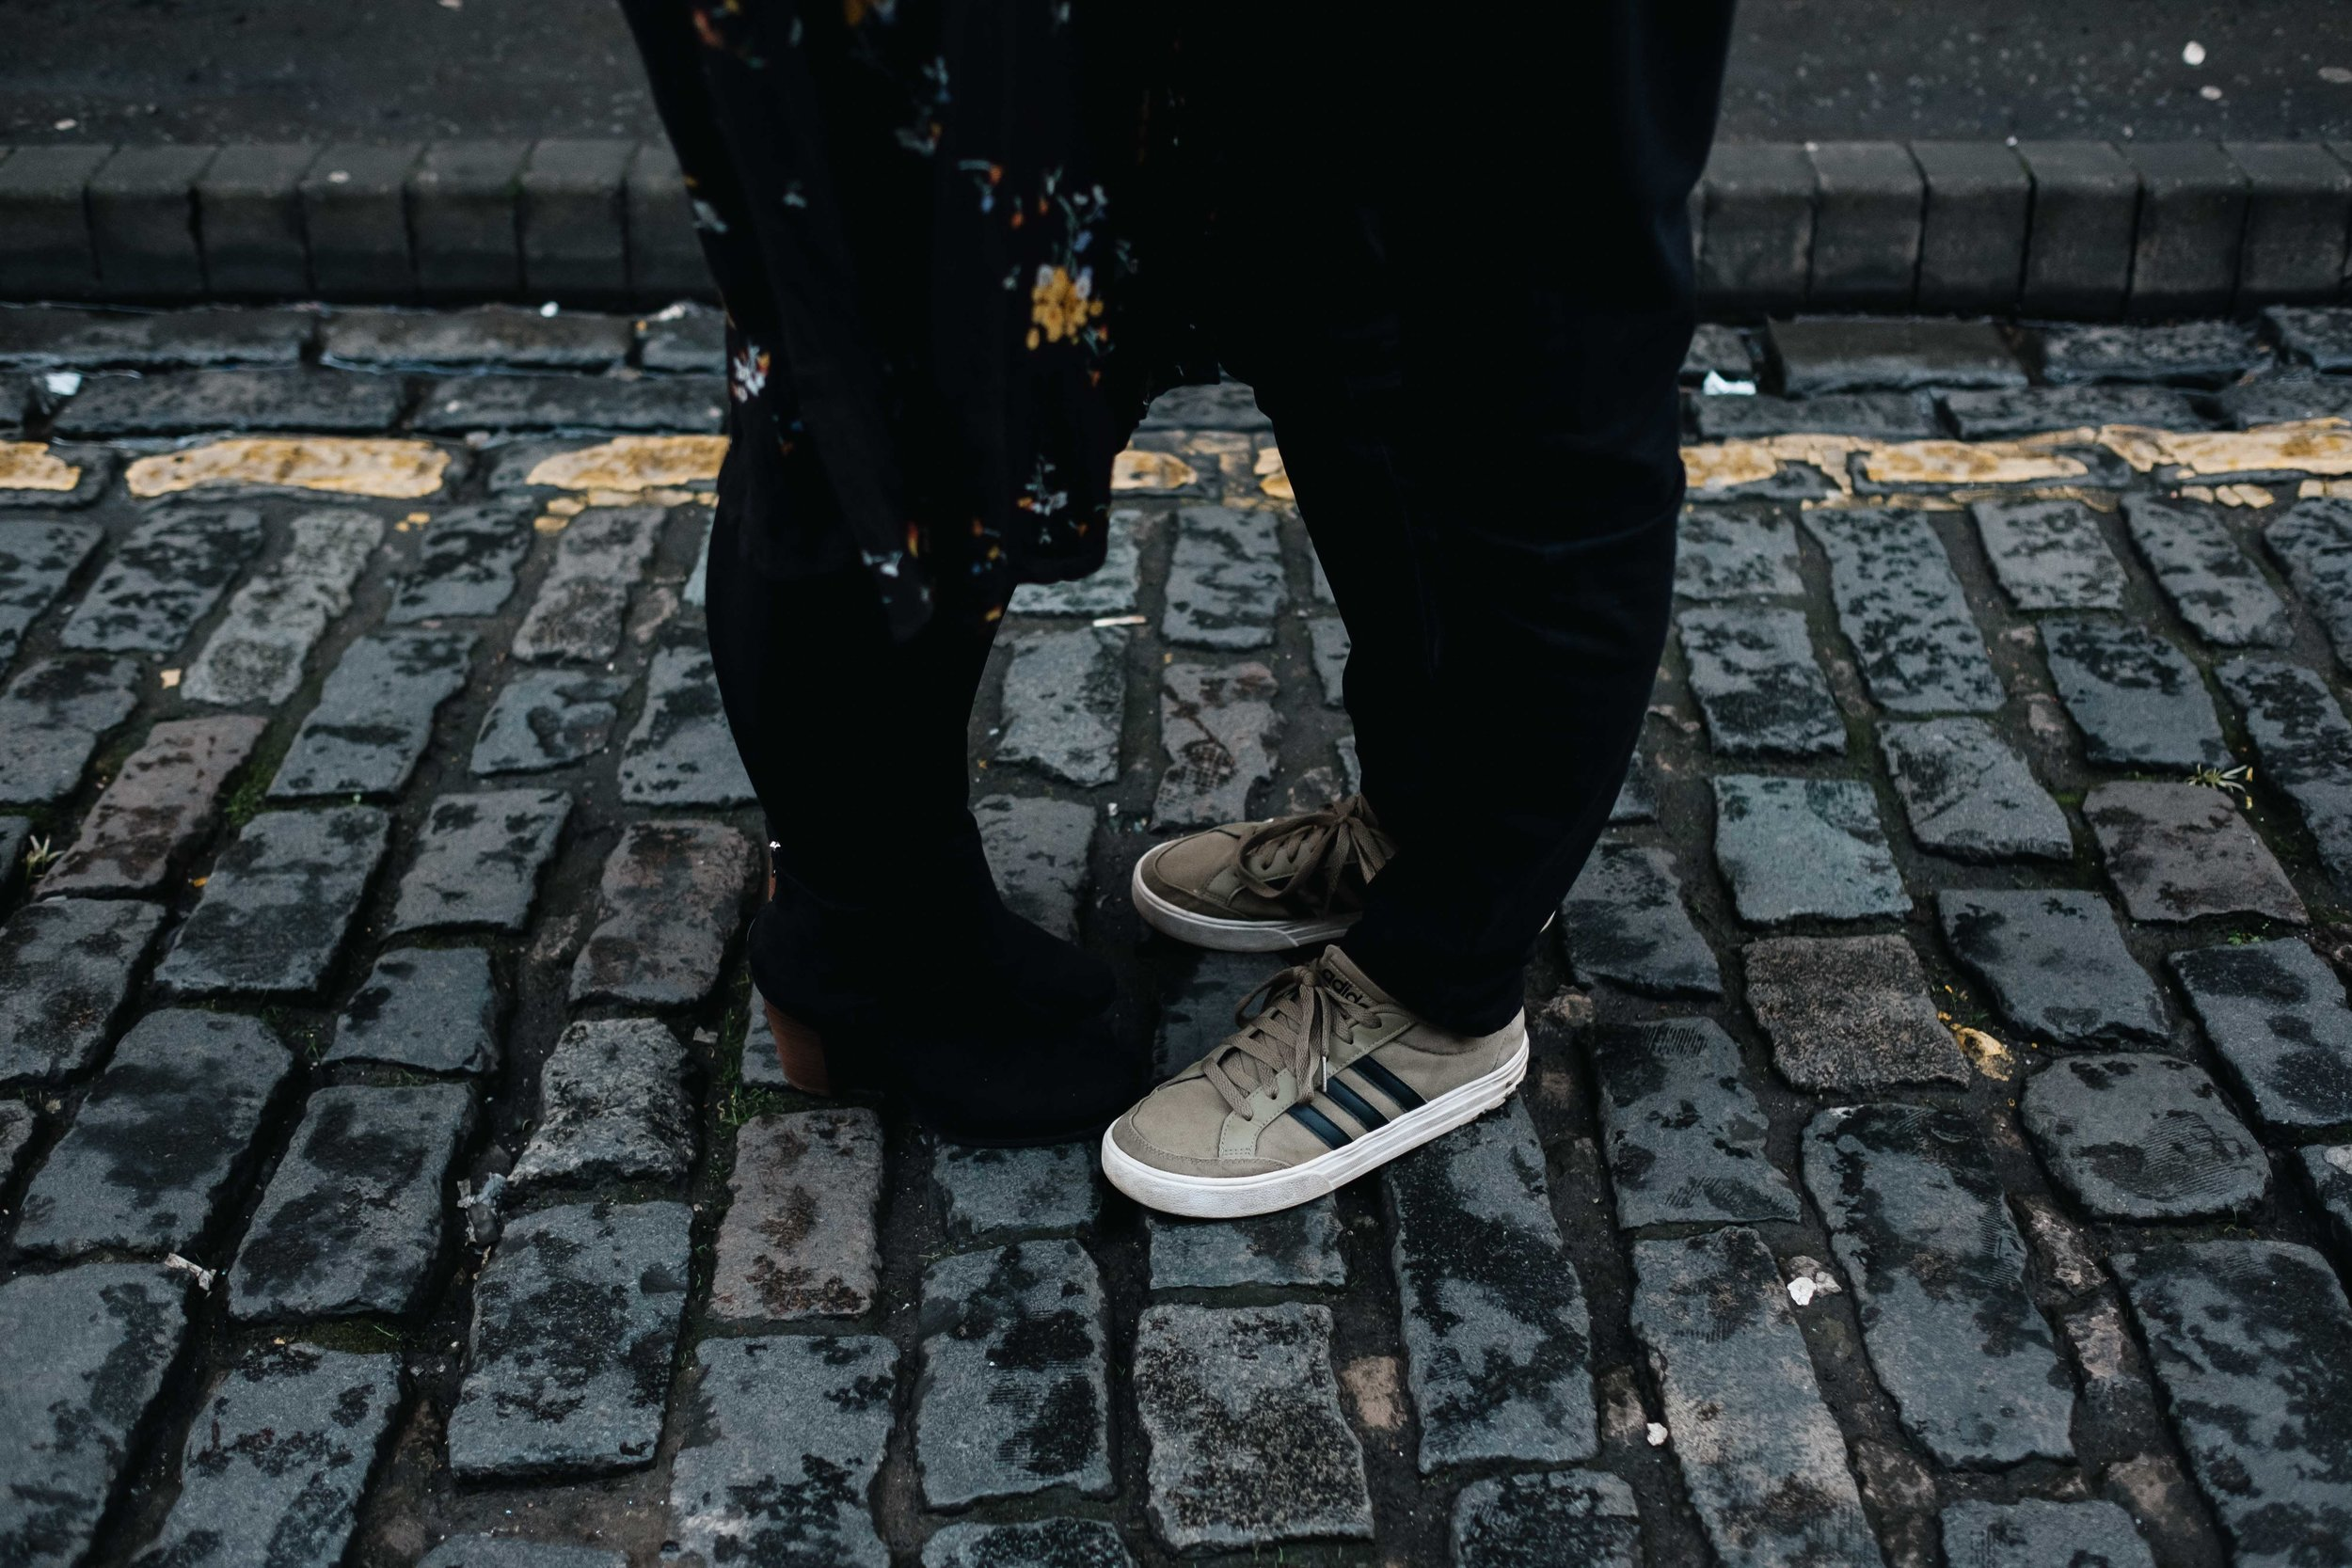 A couple's feet only are in view. They are standing close to each other on a cobbled street.